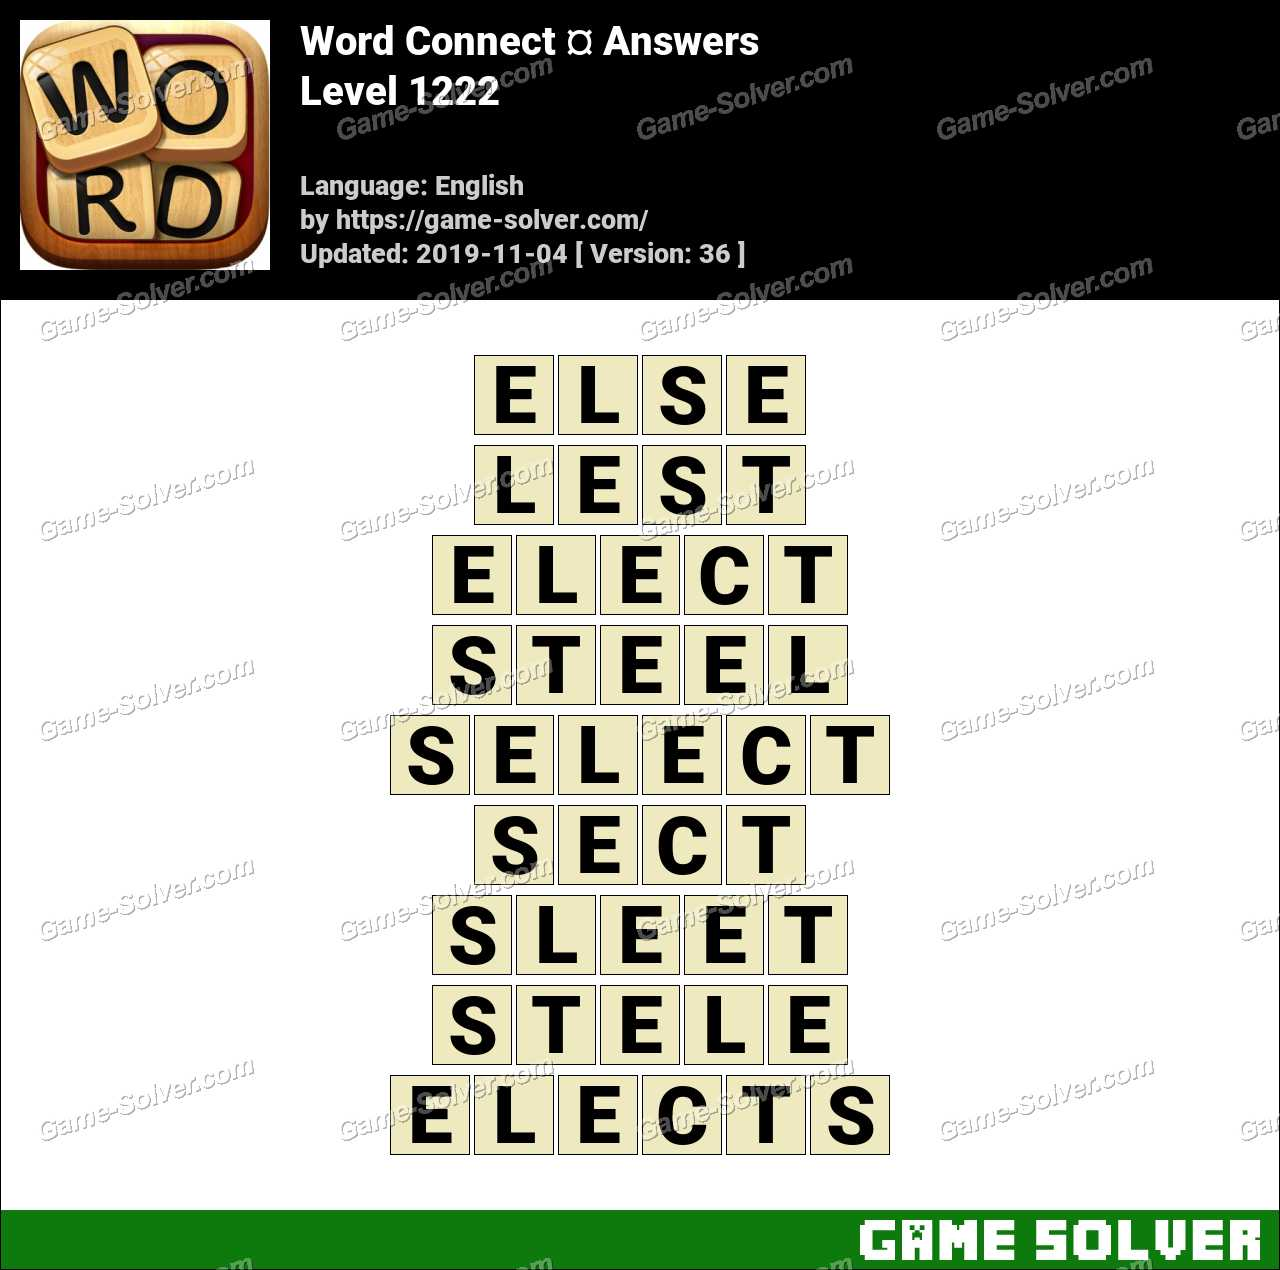 Word Connect Level 1222 Answers